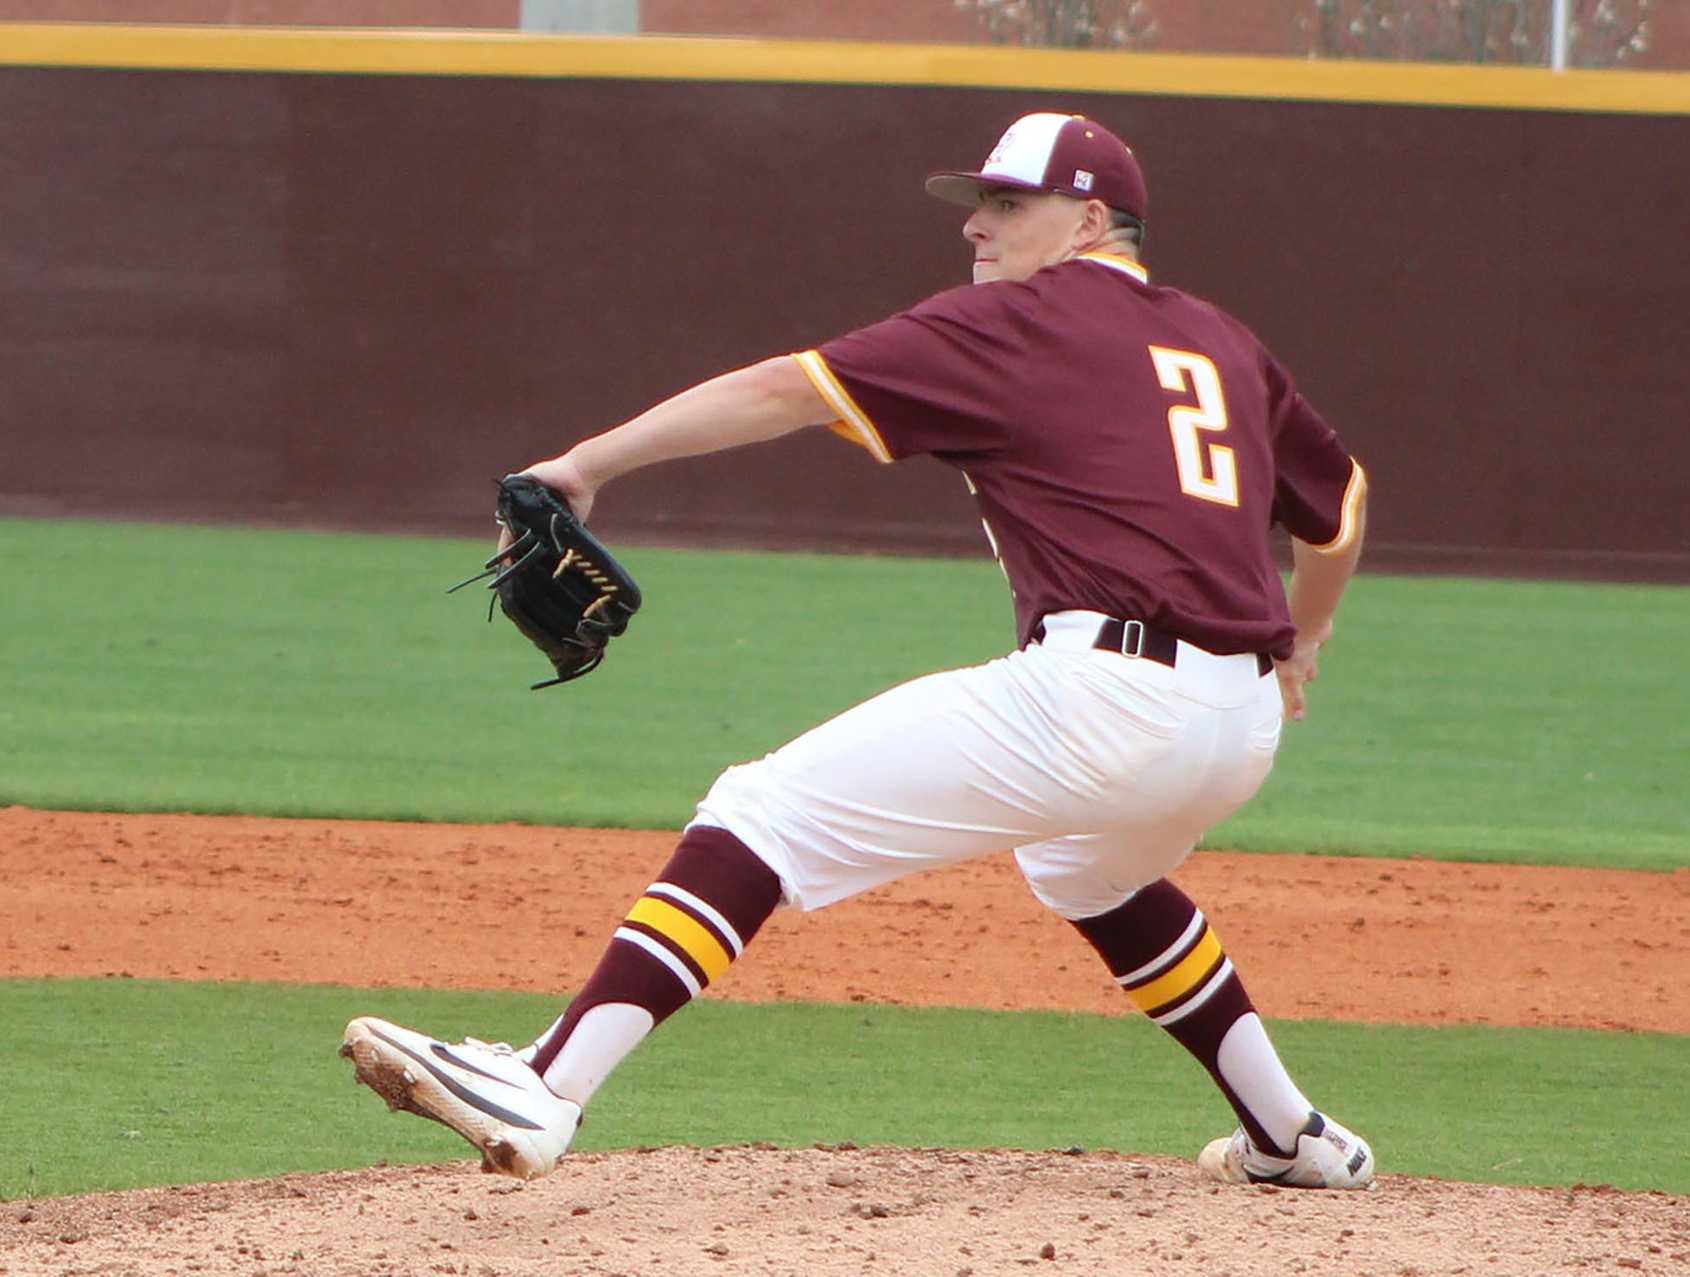 Right-hander Miles Smith is expected to be one of the leaders on the Pearl River baseball team in 2019. The Wildcats recently opened fall practice. (PRCC ATHLETICS)